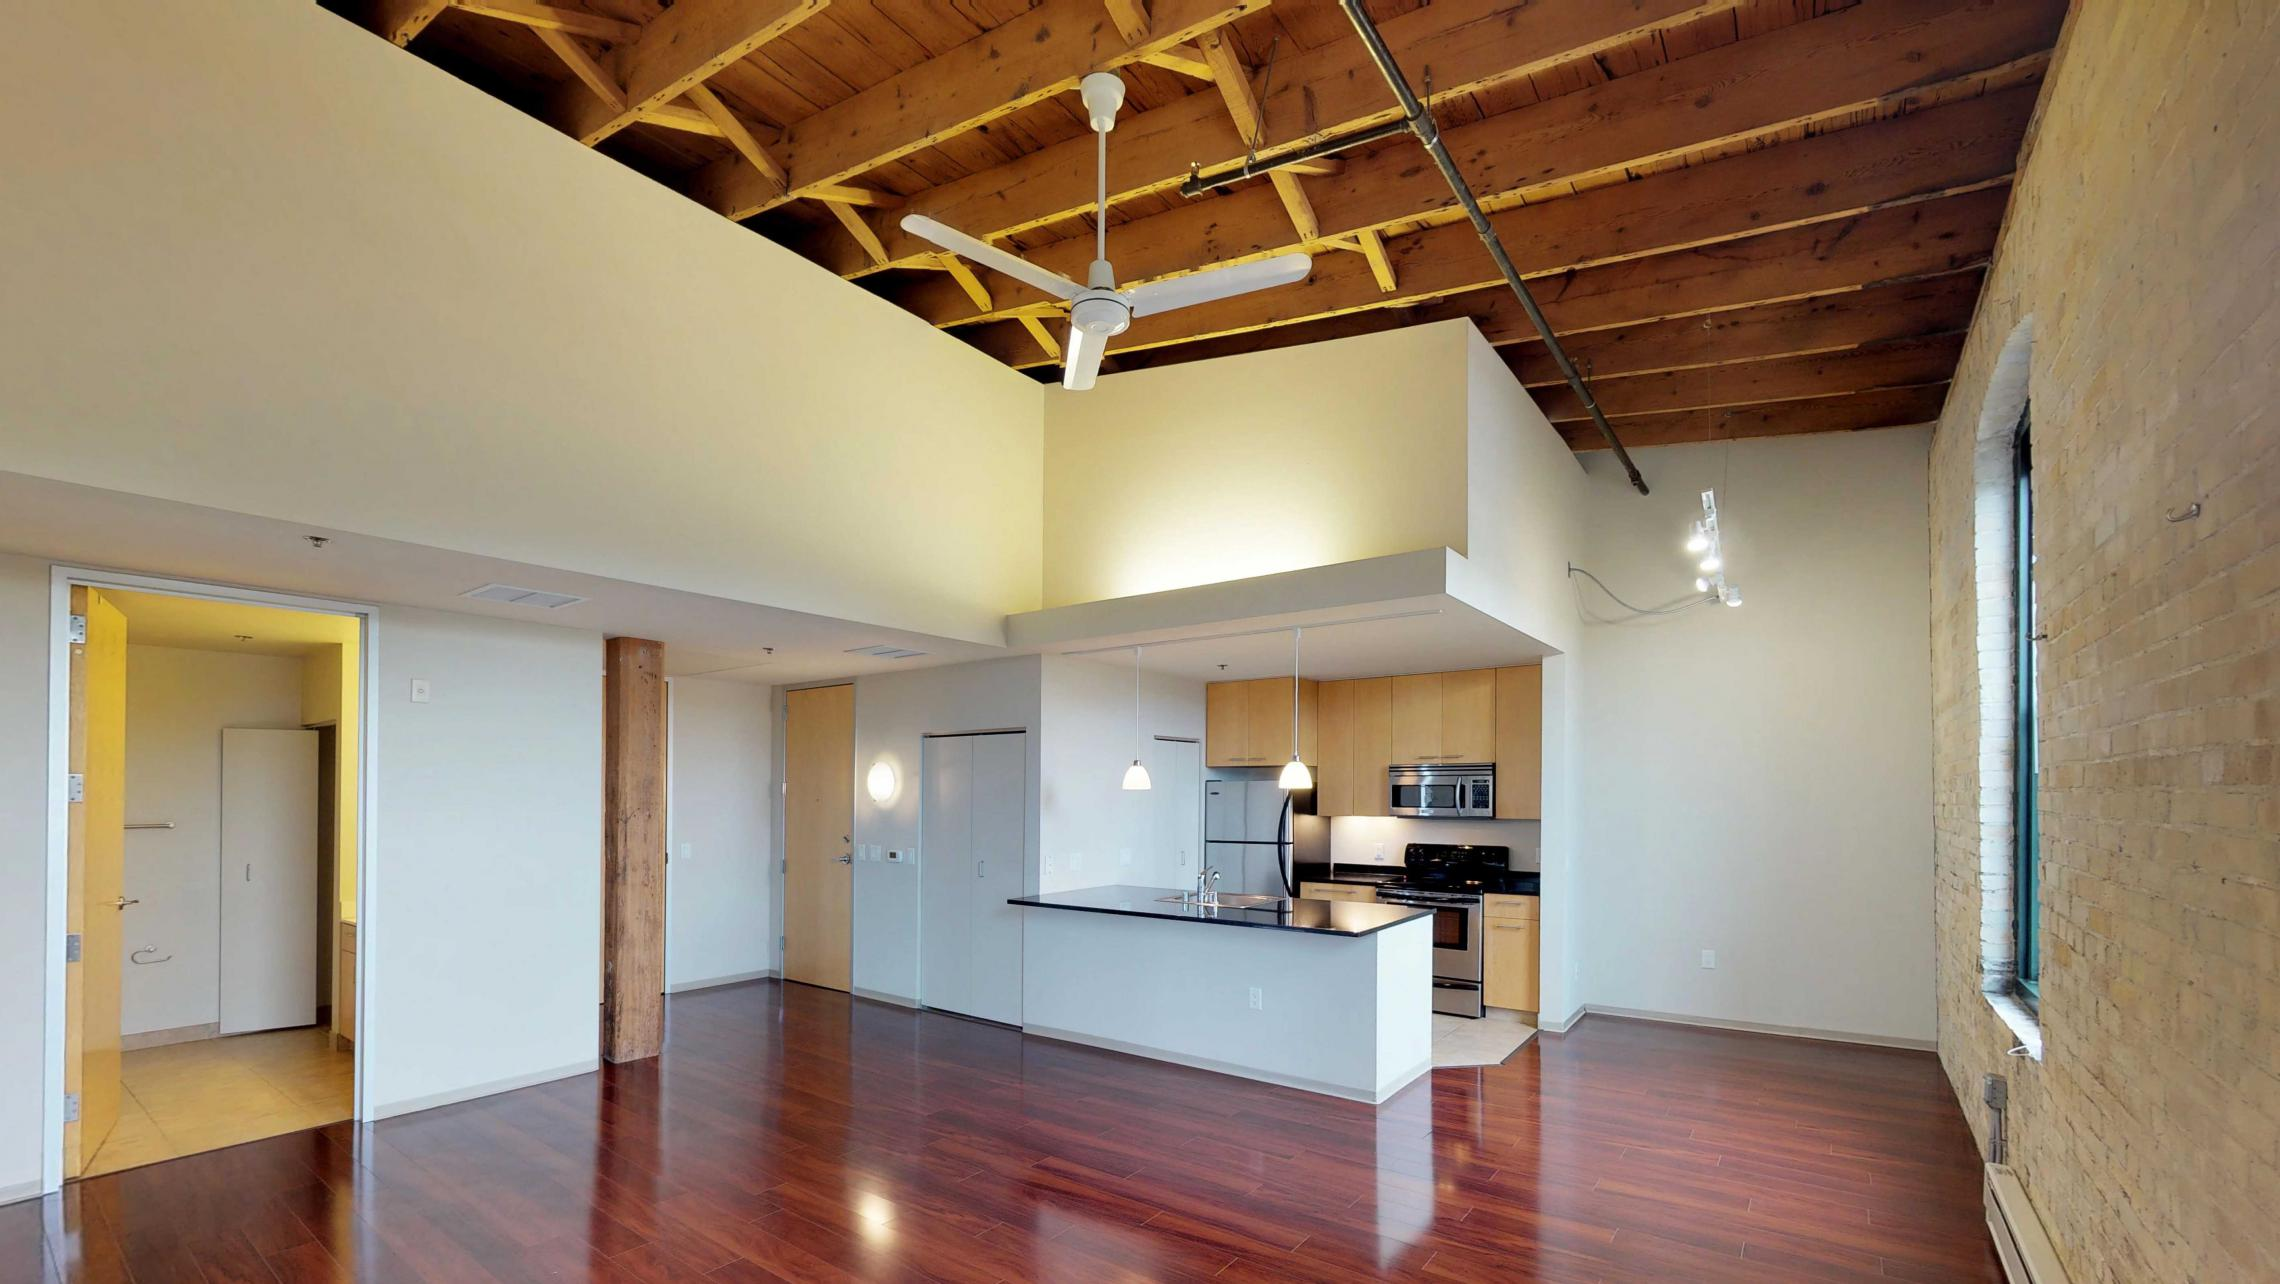 Tobacco-Lofts-Two-Bedroom-Apartment-E312-Historic-Downtown-Madison-Living-Room-Kitchen-Design-Yards